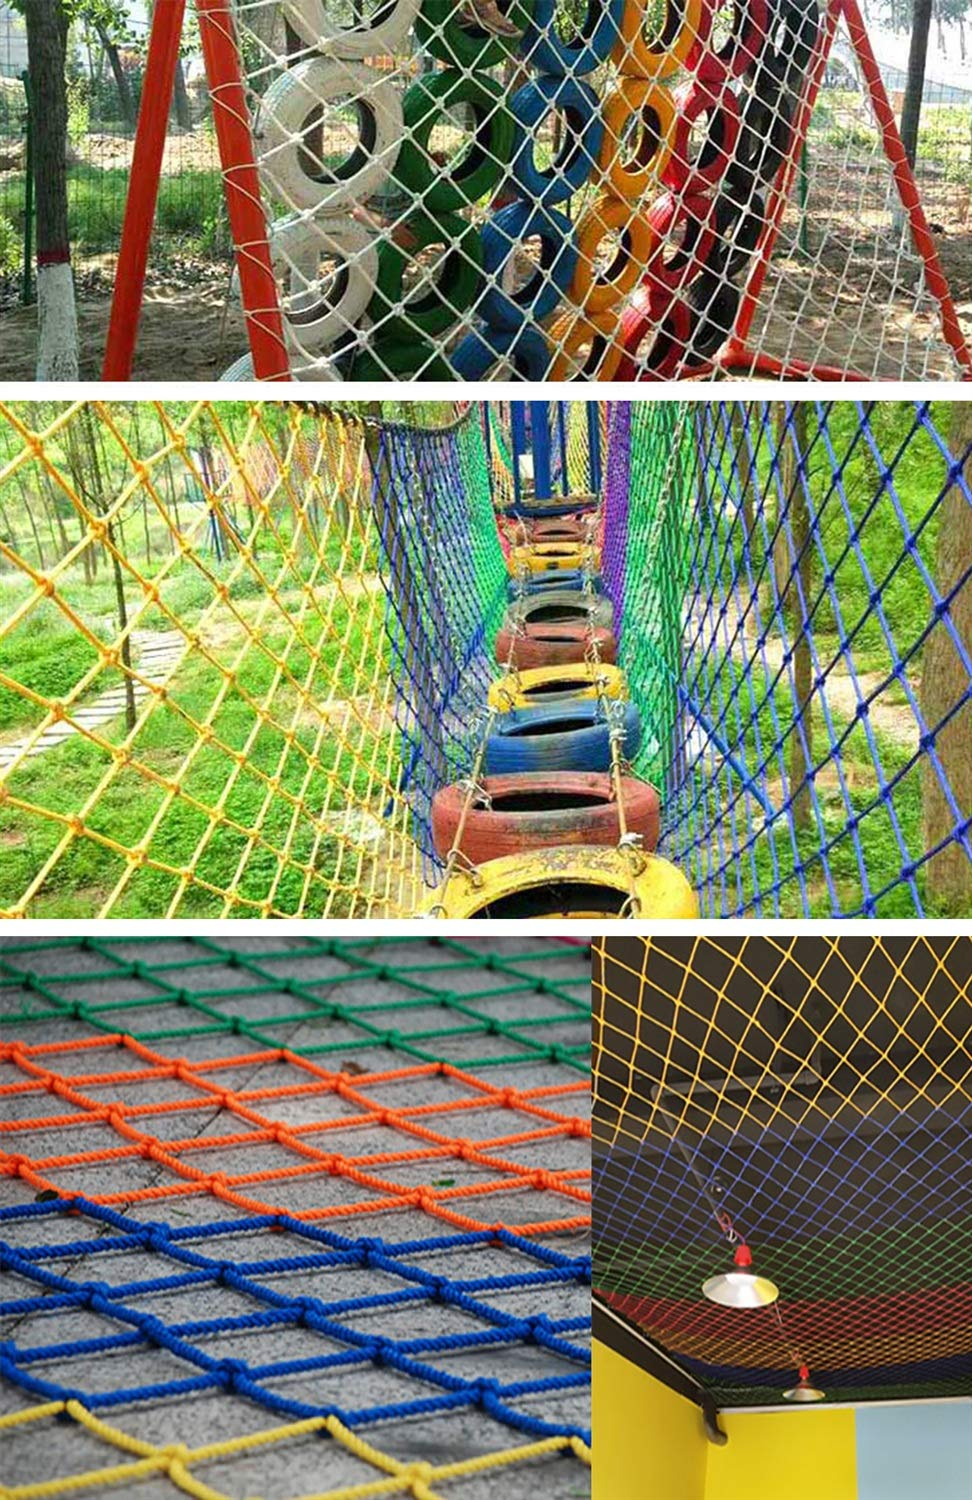 Orange Child safety net protective net balcony stairs anti-fall net kindergarten color decorative net fence network Width 1/4M Length 1M /9M Hand braided traditional structure (Size : 4 * 5m)  [Protect children's safety]: Many children fall from the building, let us understand that the safety of children can not be ignored. [Polyester knotless woven mesh]: The mesh surface has large pulling force, and the double needle has no knot woven mesh hole, so that the mesh has stronger impact resistance. [wire diameter 6MM, mesh spacing 4CM]: Escort for baby safety.(Others available in our shop) 12